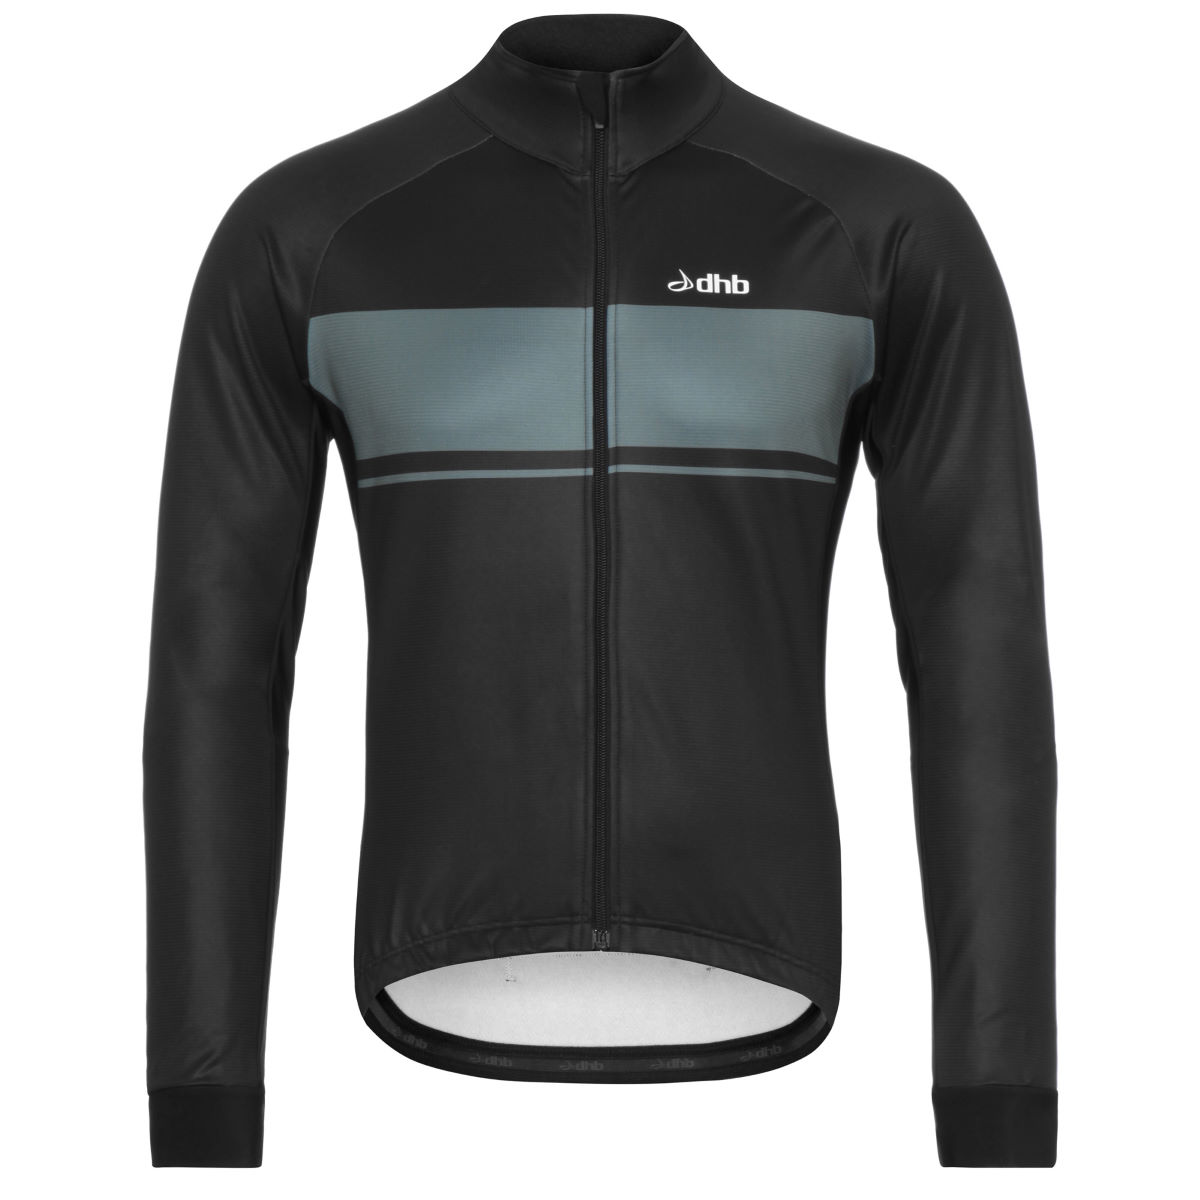 Veste coupe-vent dhb Classic Softshell - Small Noir Coupe-vents vélo